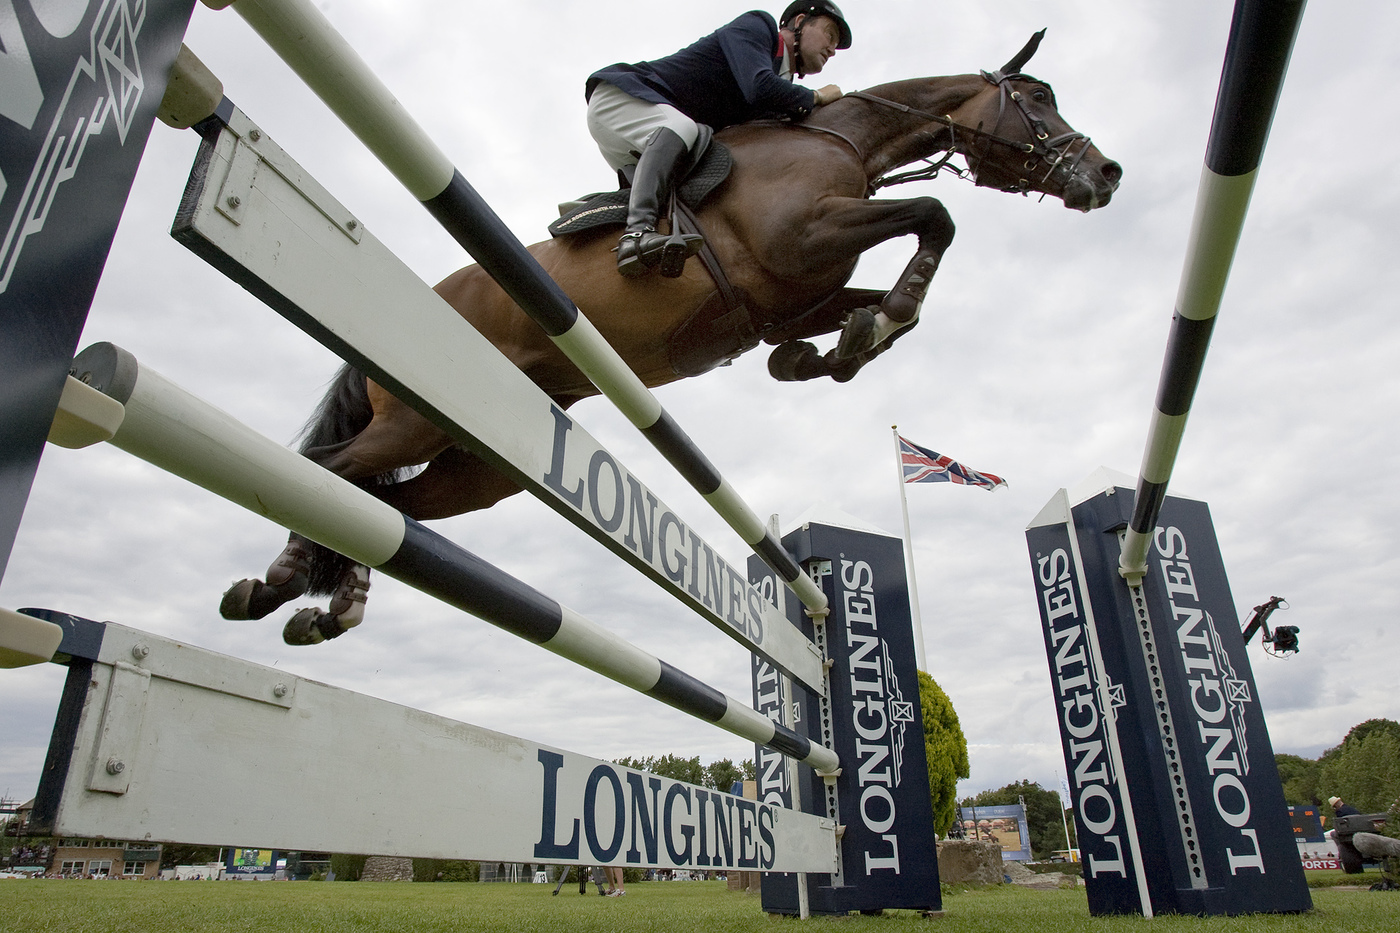 Longines Show Jumping Event: Longines Royal International Horse Show 2010 in Hickstead 4